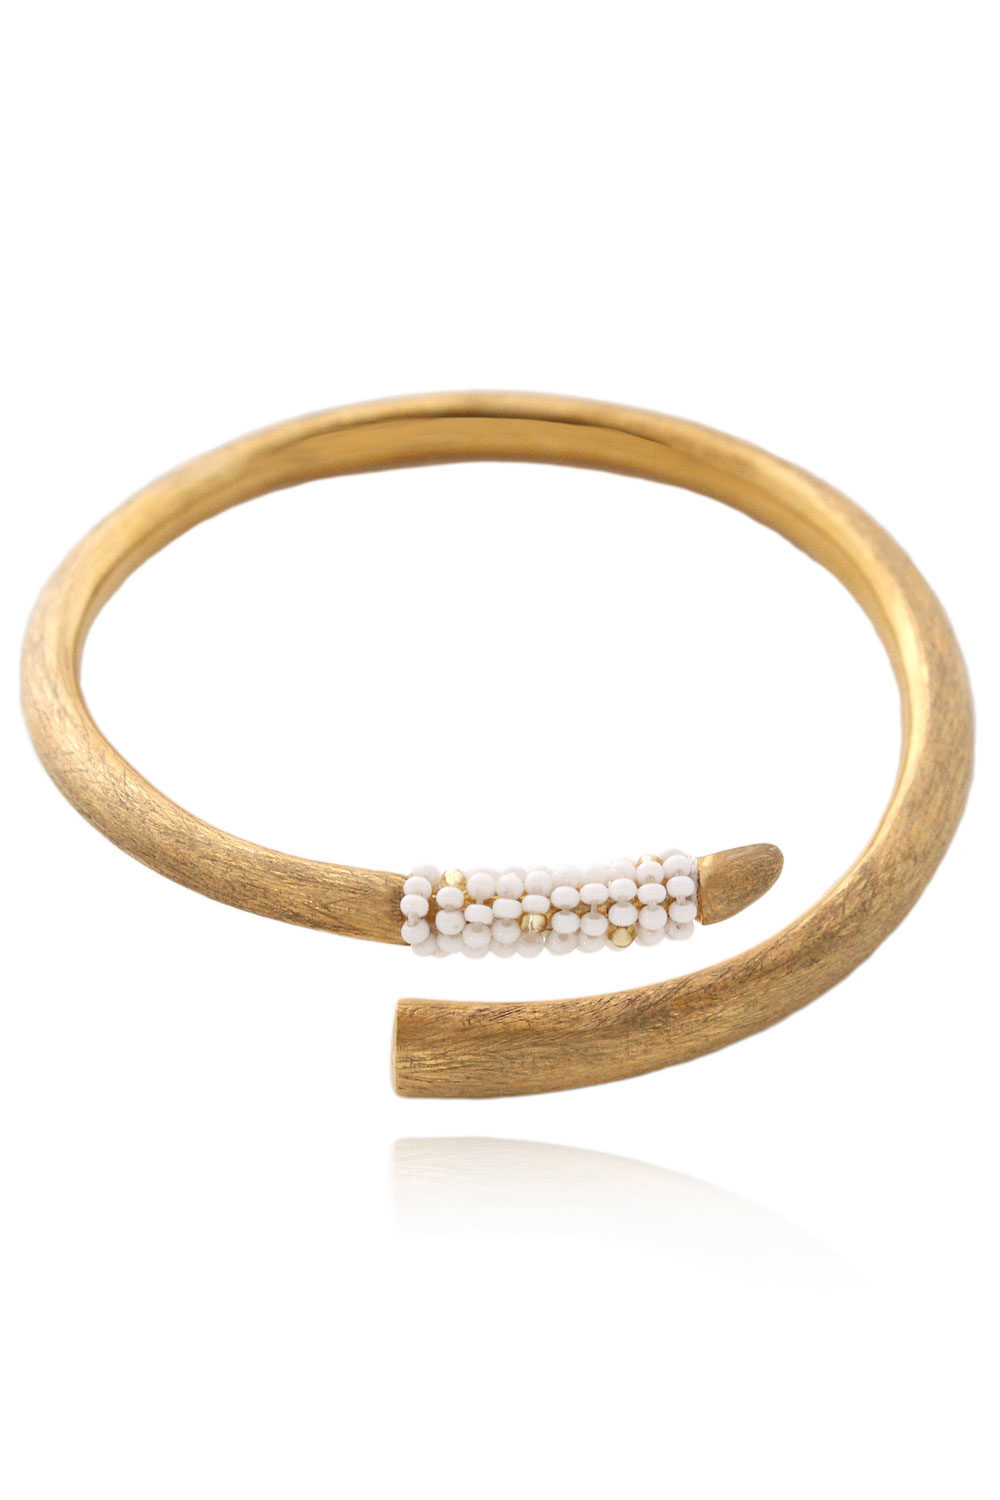 Vogue Tusk Bangle White Beaded Tembo by SHIKHAZURI